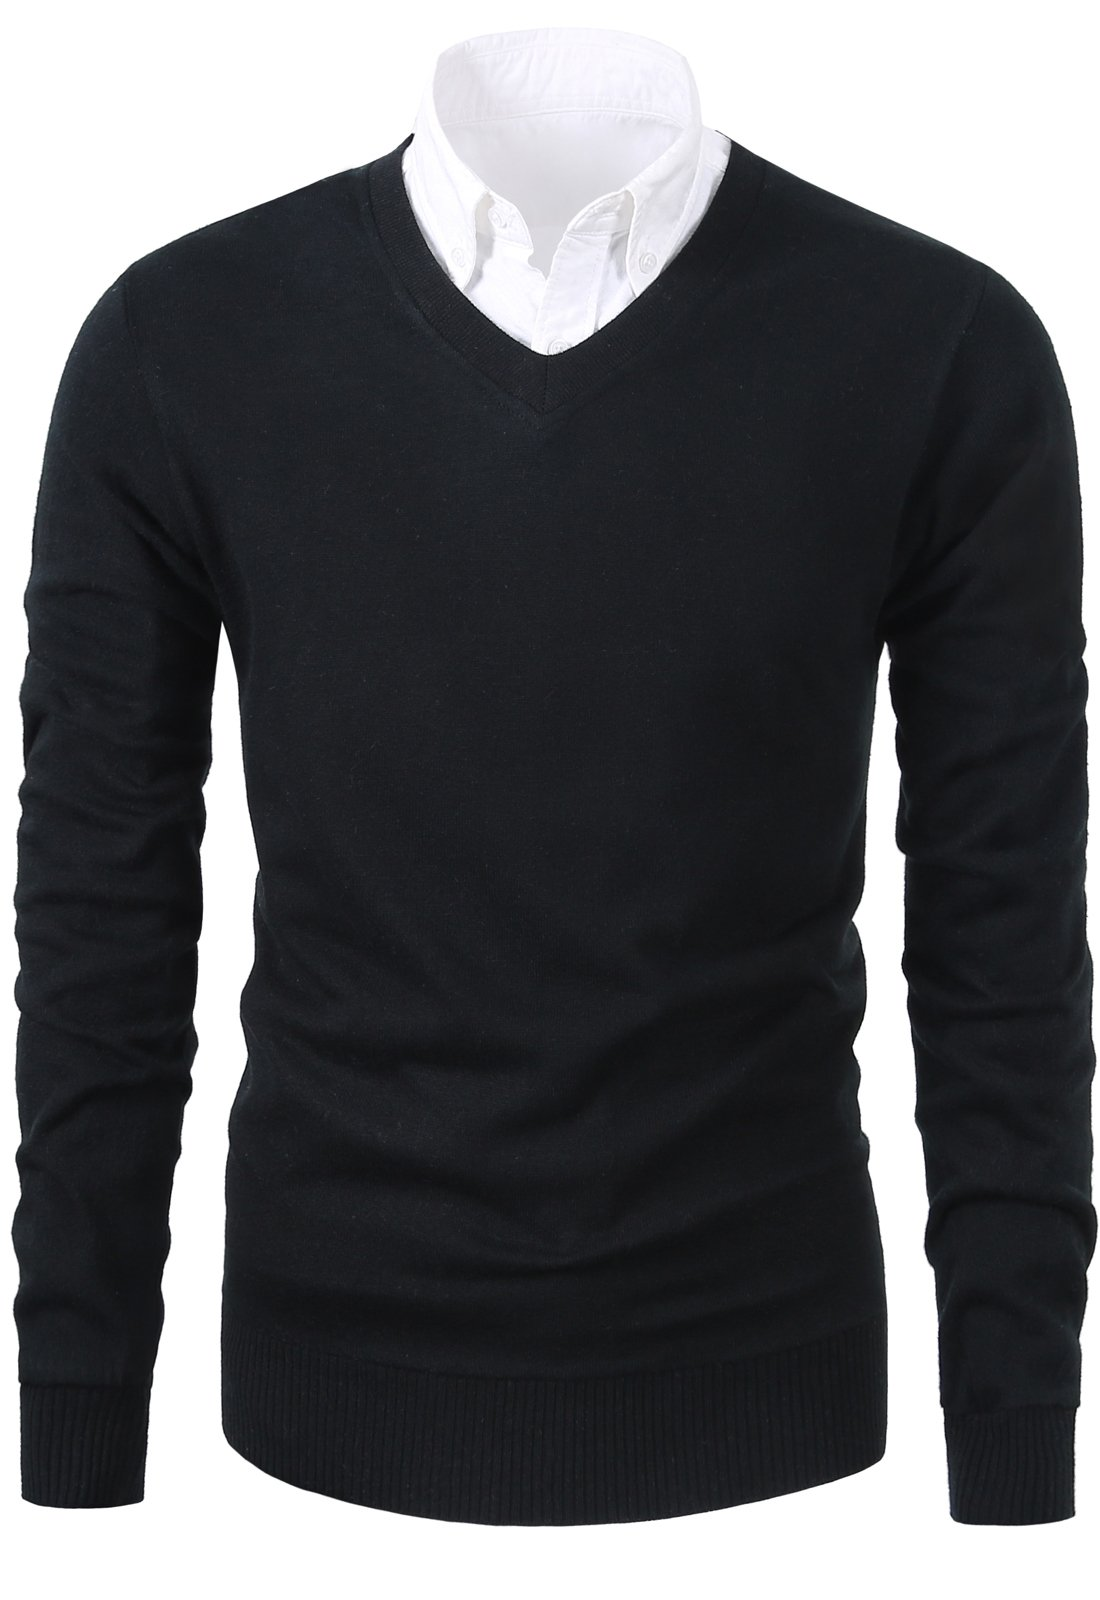 Mesahara Mens Casual Slim Fit Knit V-Neck Pullover Sweater (M, Black)